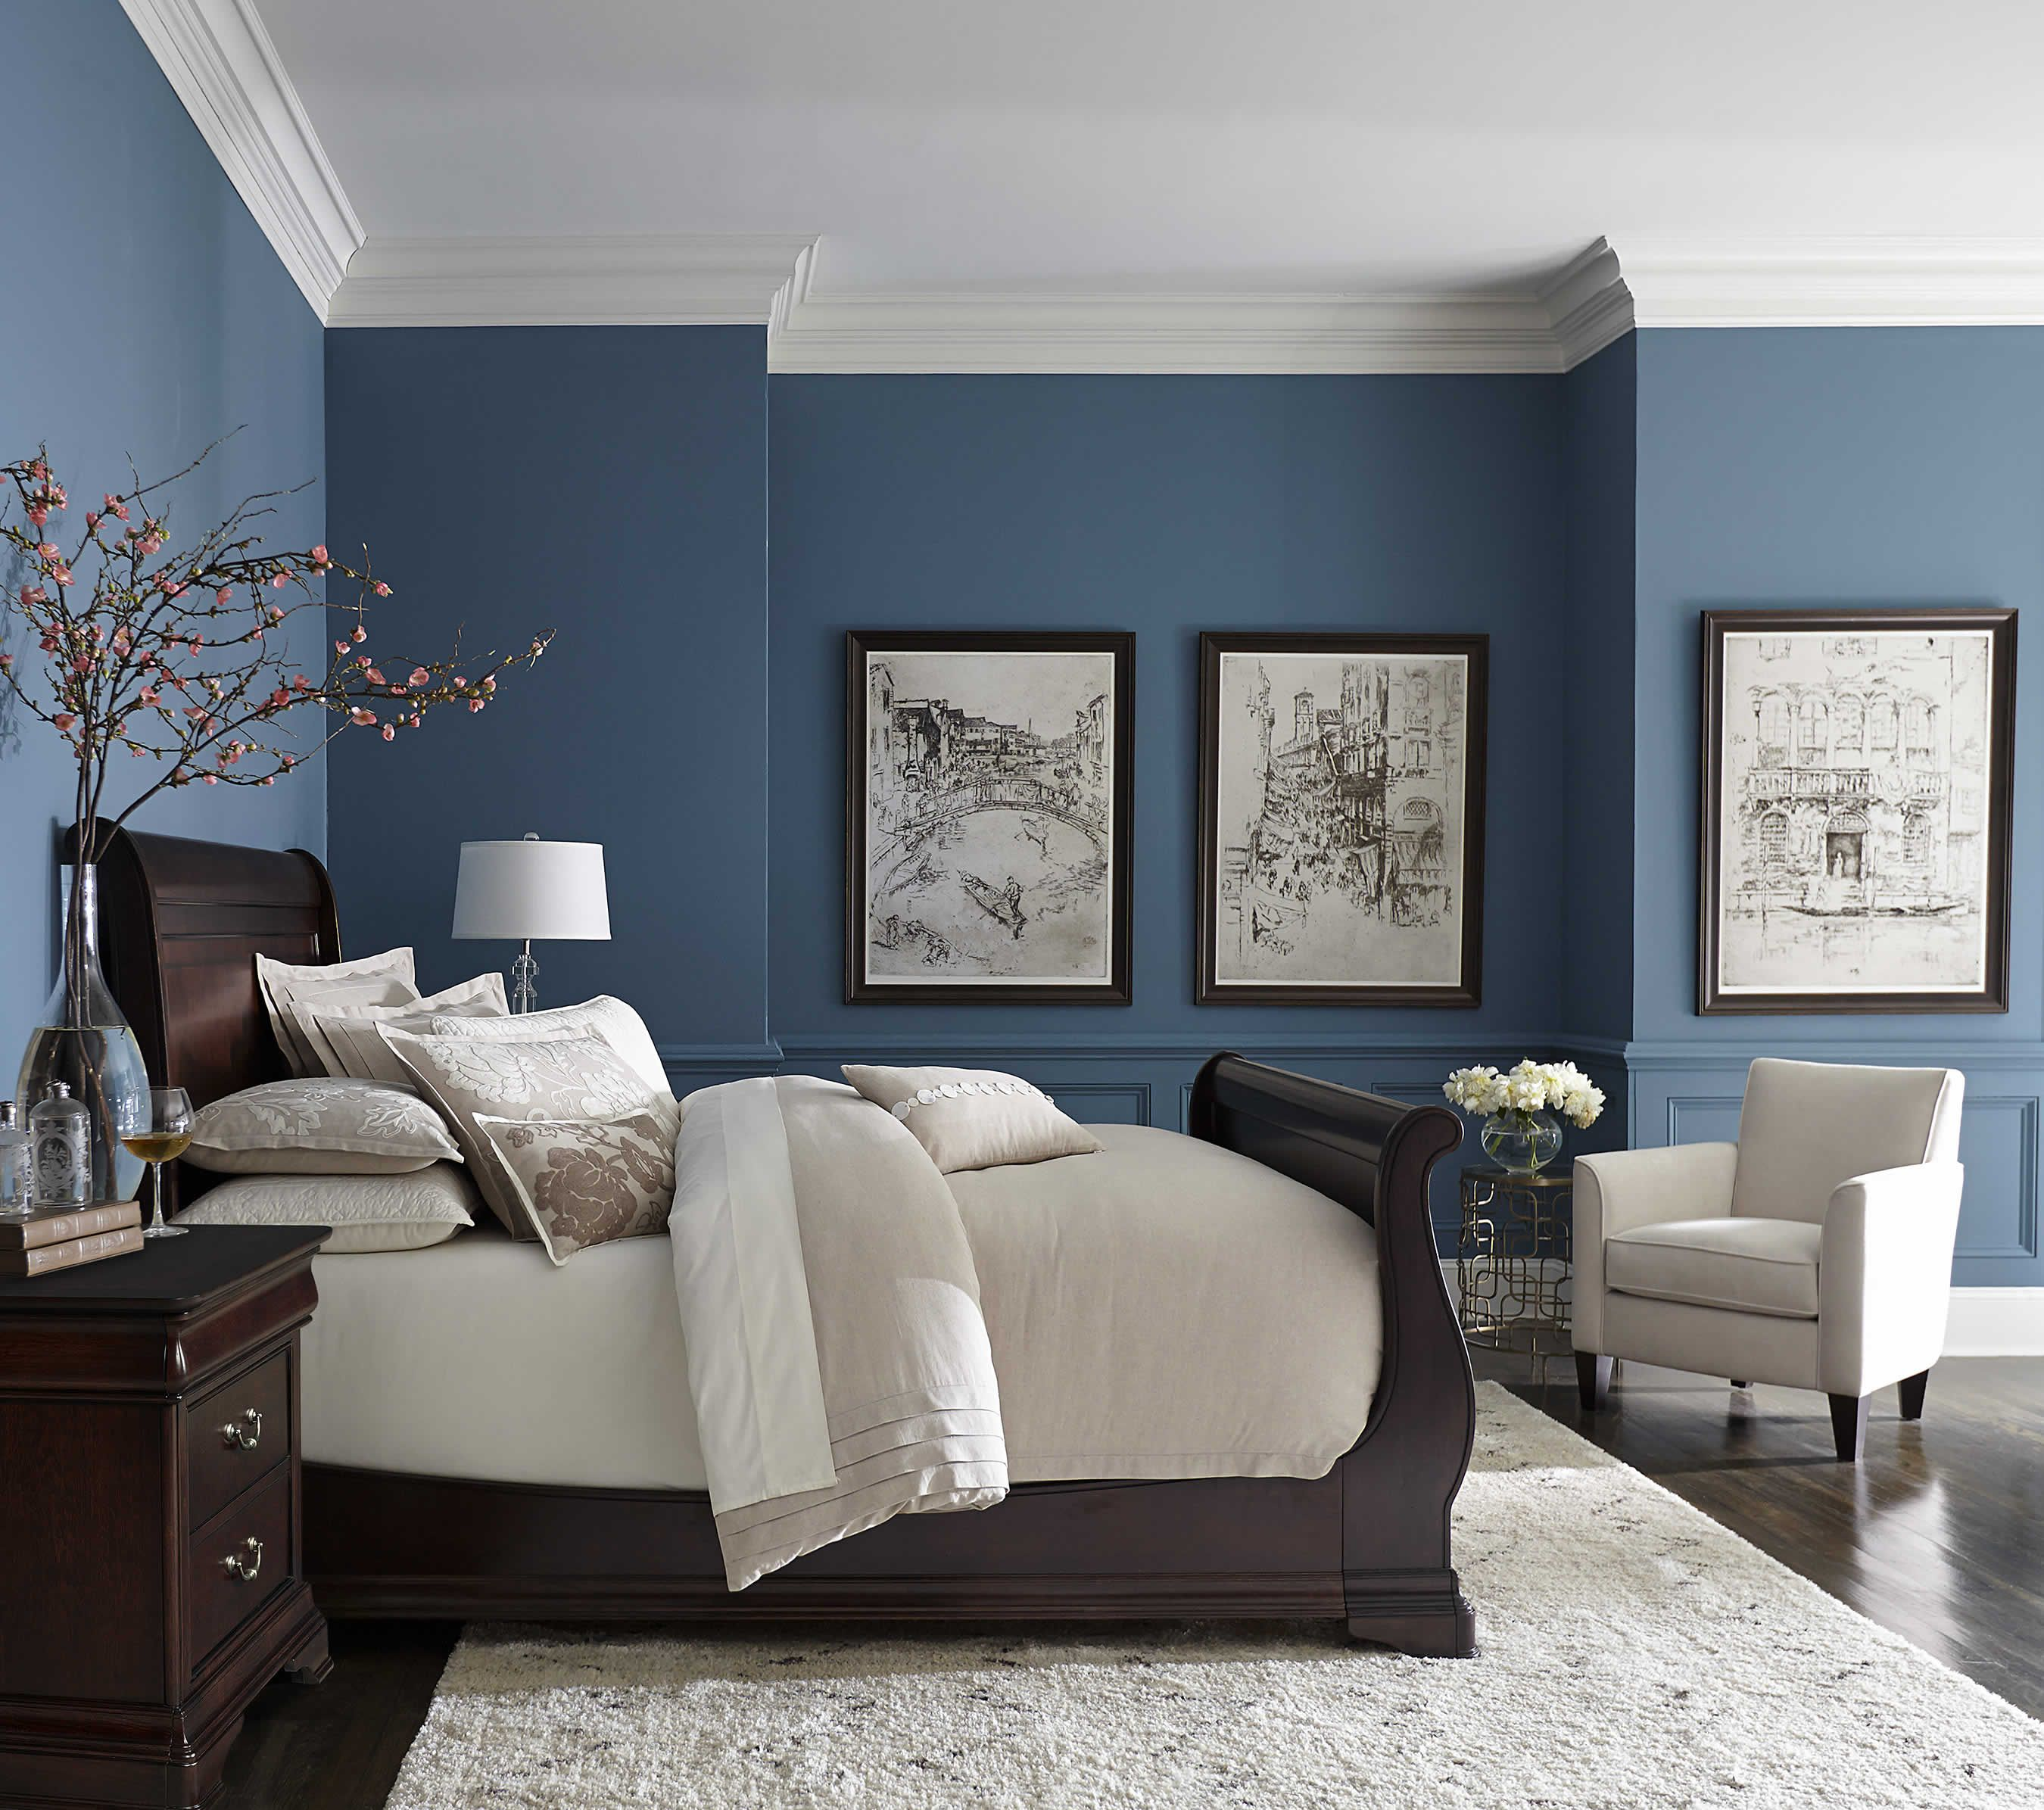 pretty blue color with white crown molding | Bedrooms in ...